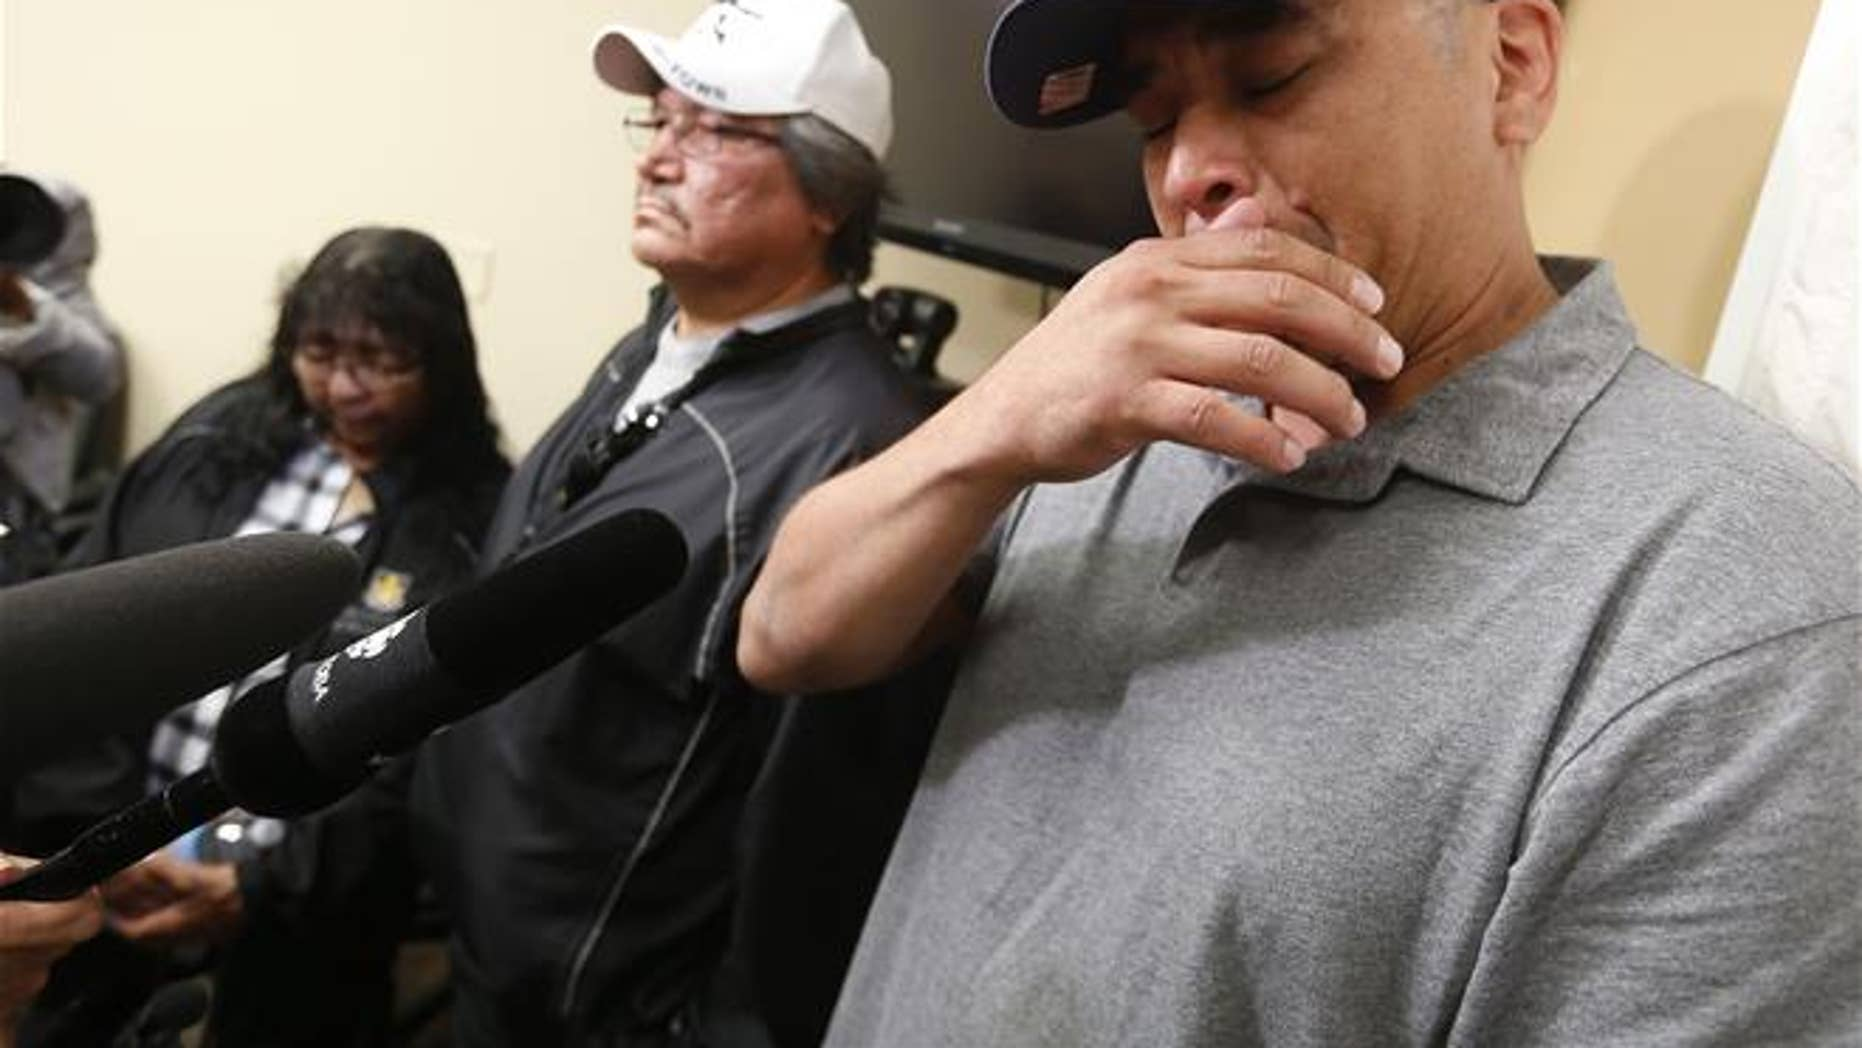 Leon Swanson, right, with his mother Charlotte Mason and stepfather Henry Mason, weeps while speaking about being switched at birth earlier this year.